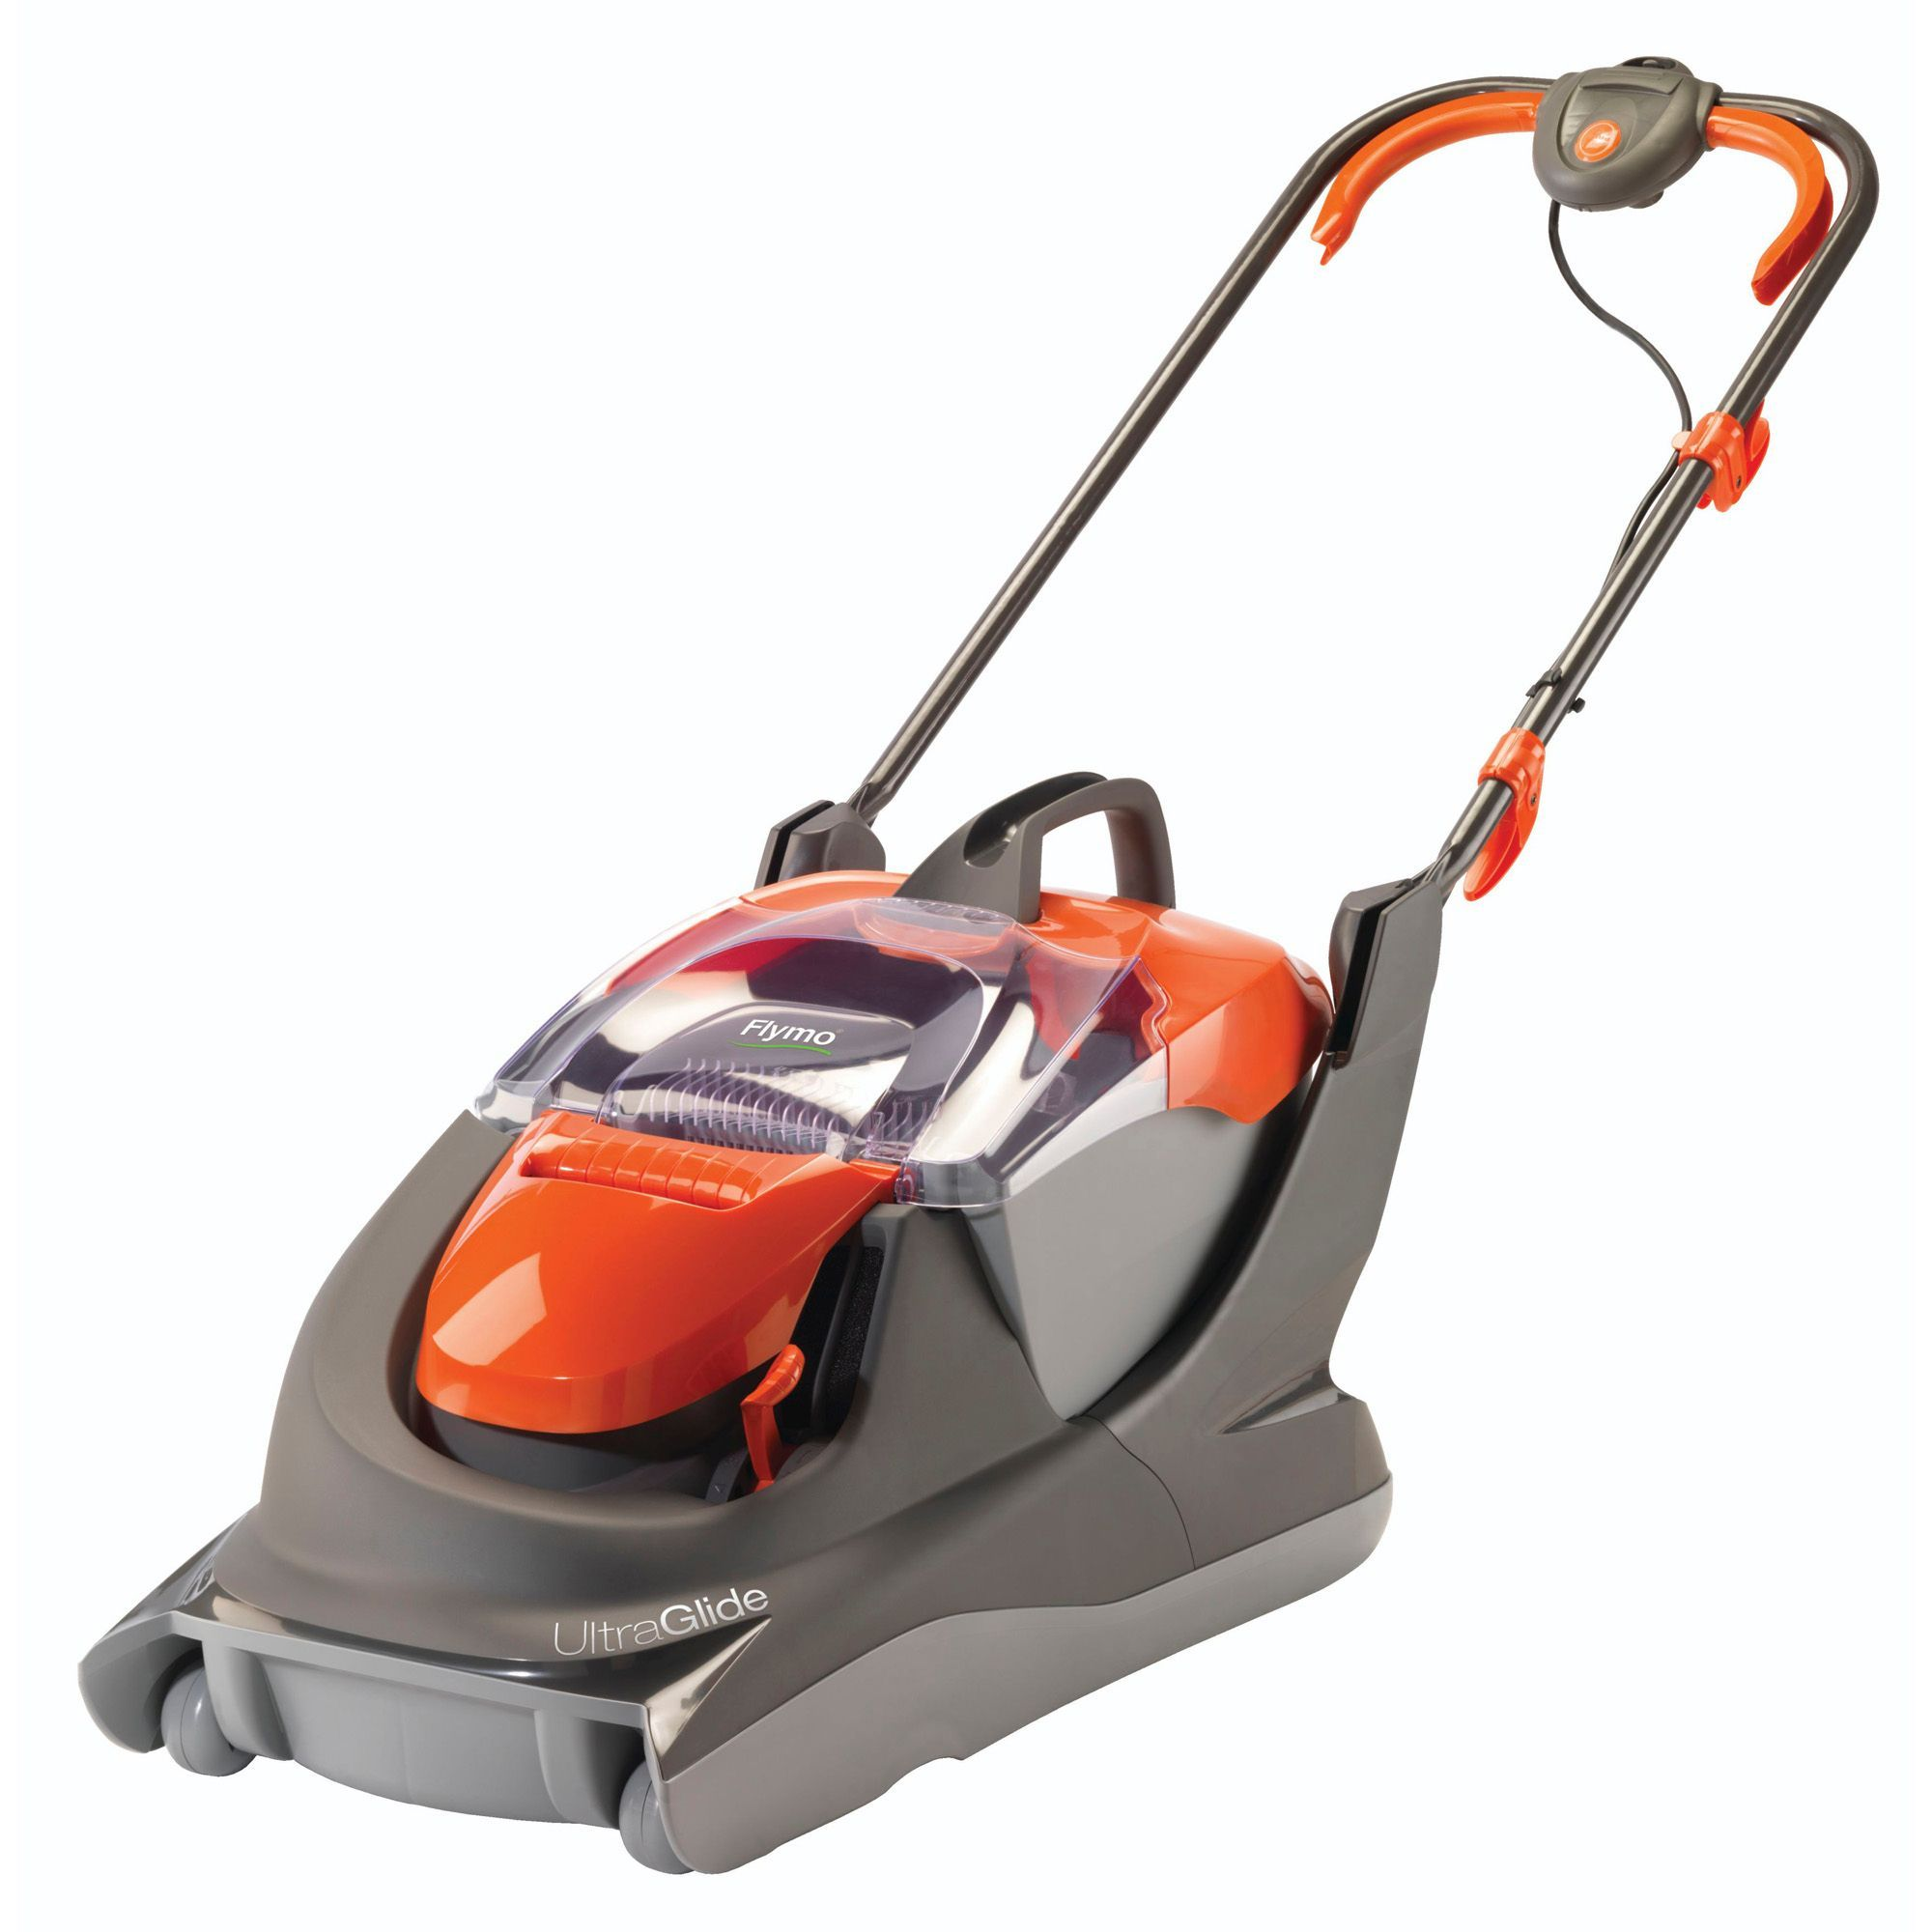 Flymo UltraGlide Corded Hover Lawnmower B&Q for all your